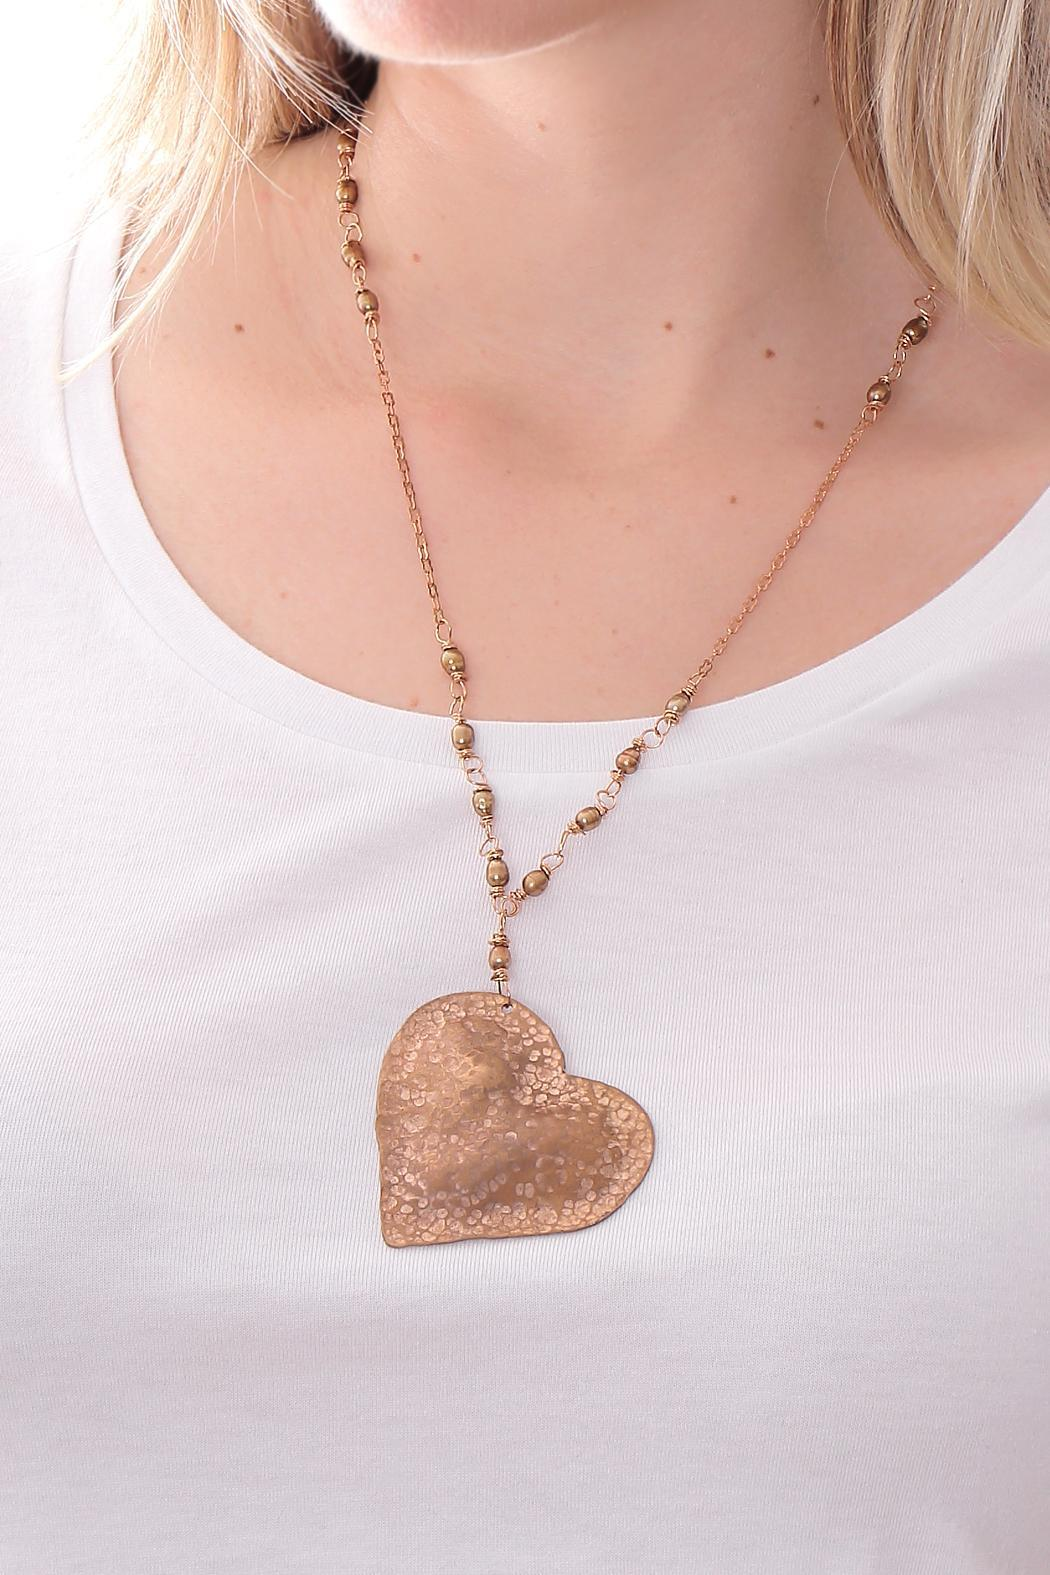 Cowgirl Chile Co. Jewelry Heart & Pearls Necklace - Front Full Image